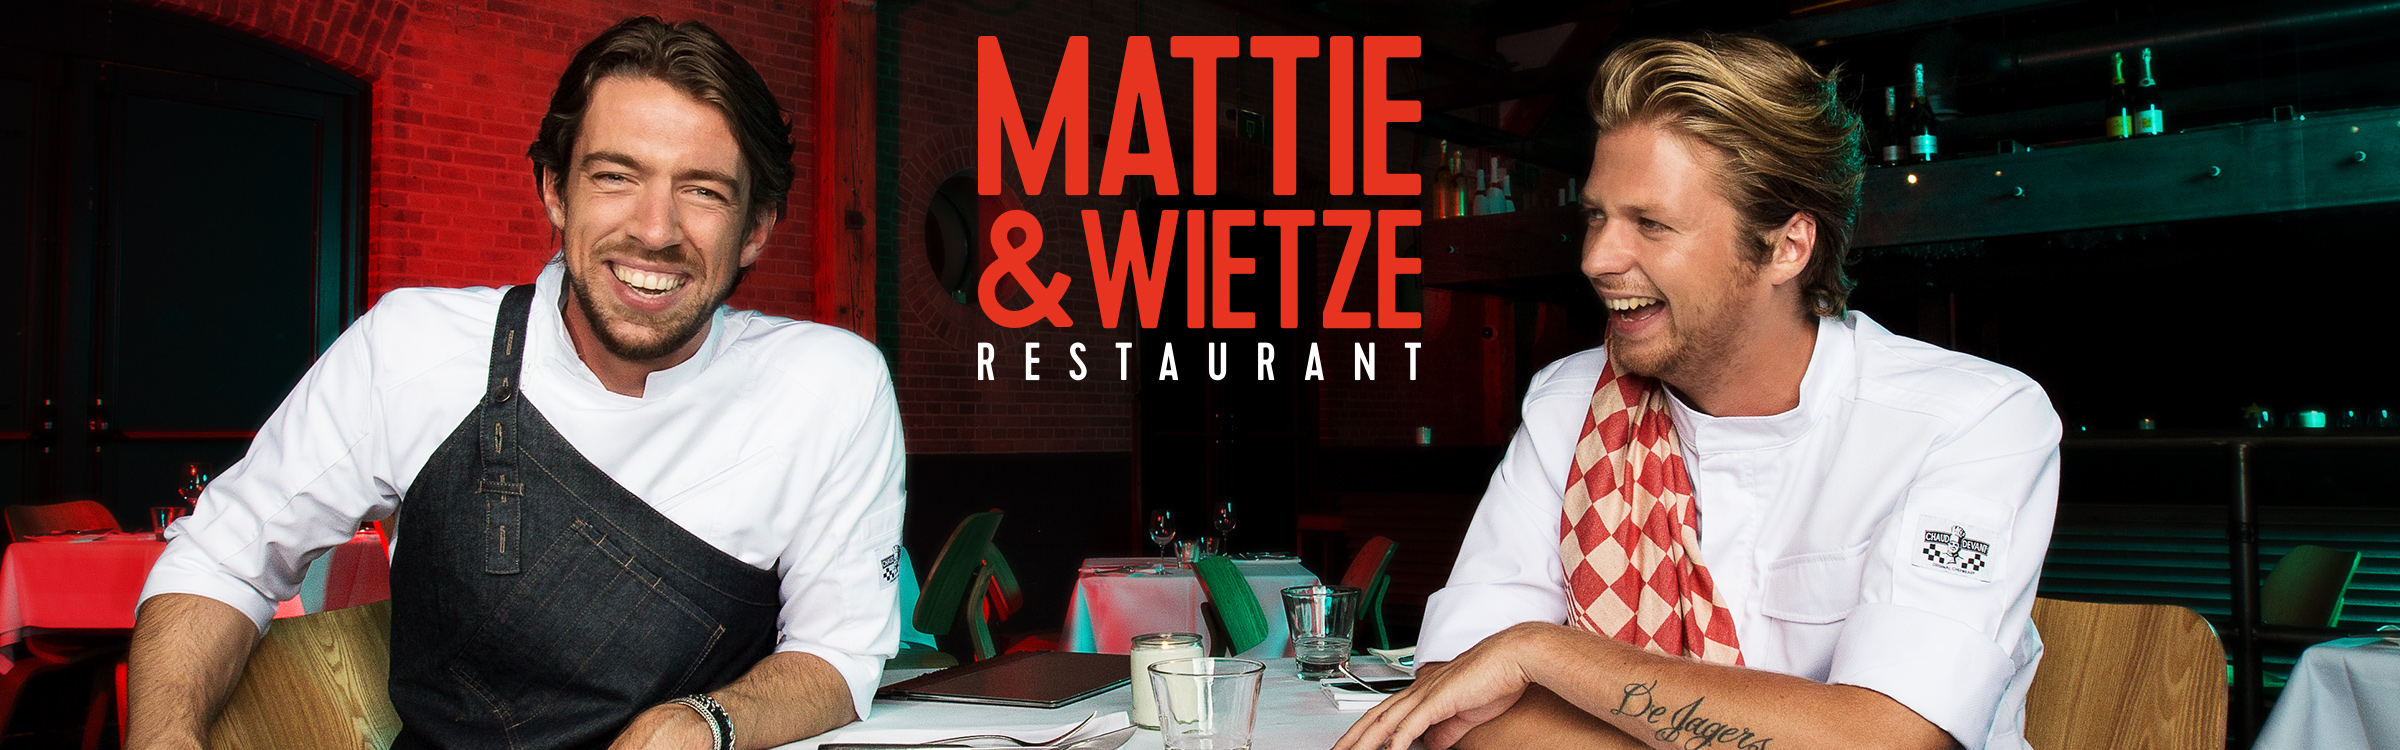 Qmusic actionheader mw restaurant kaal